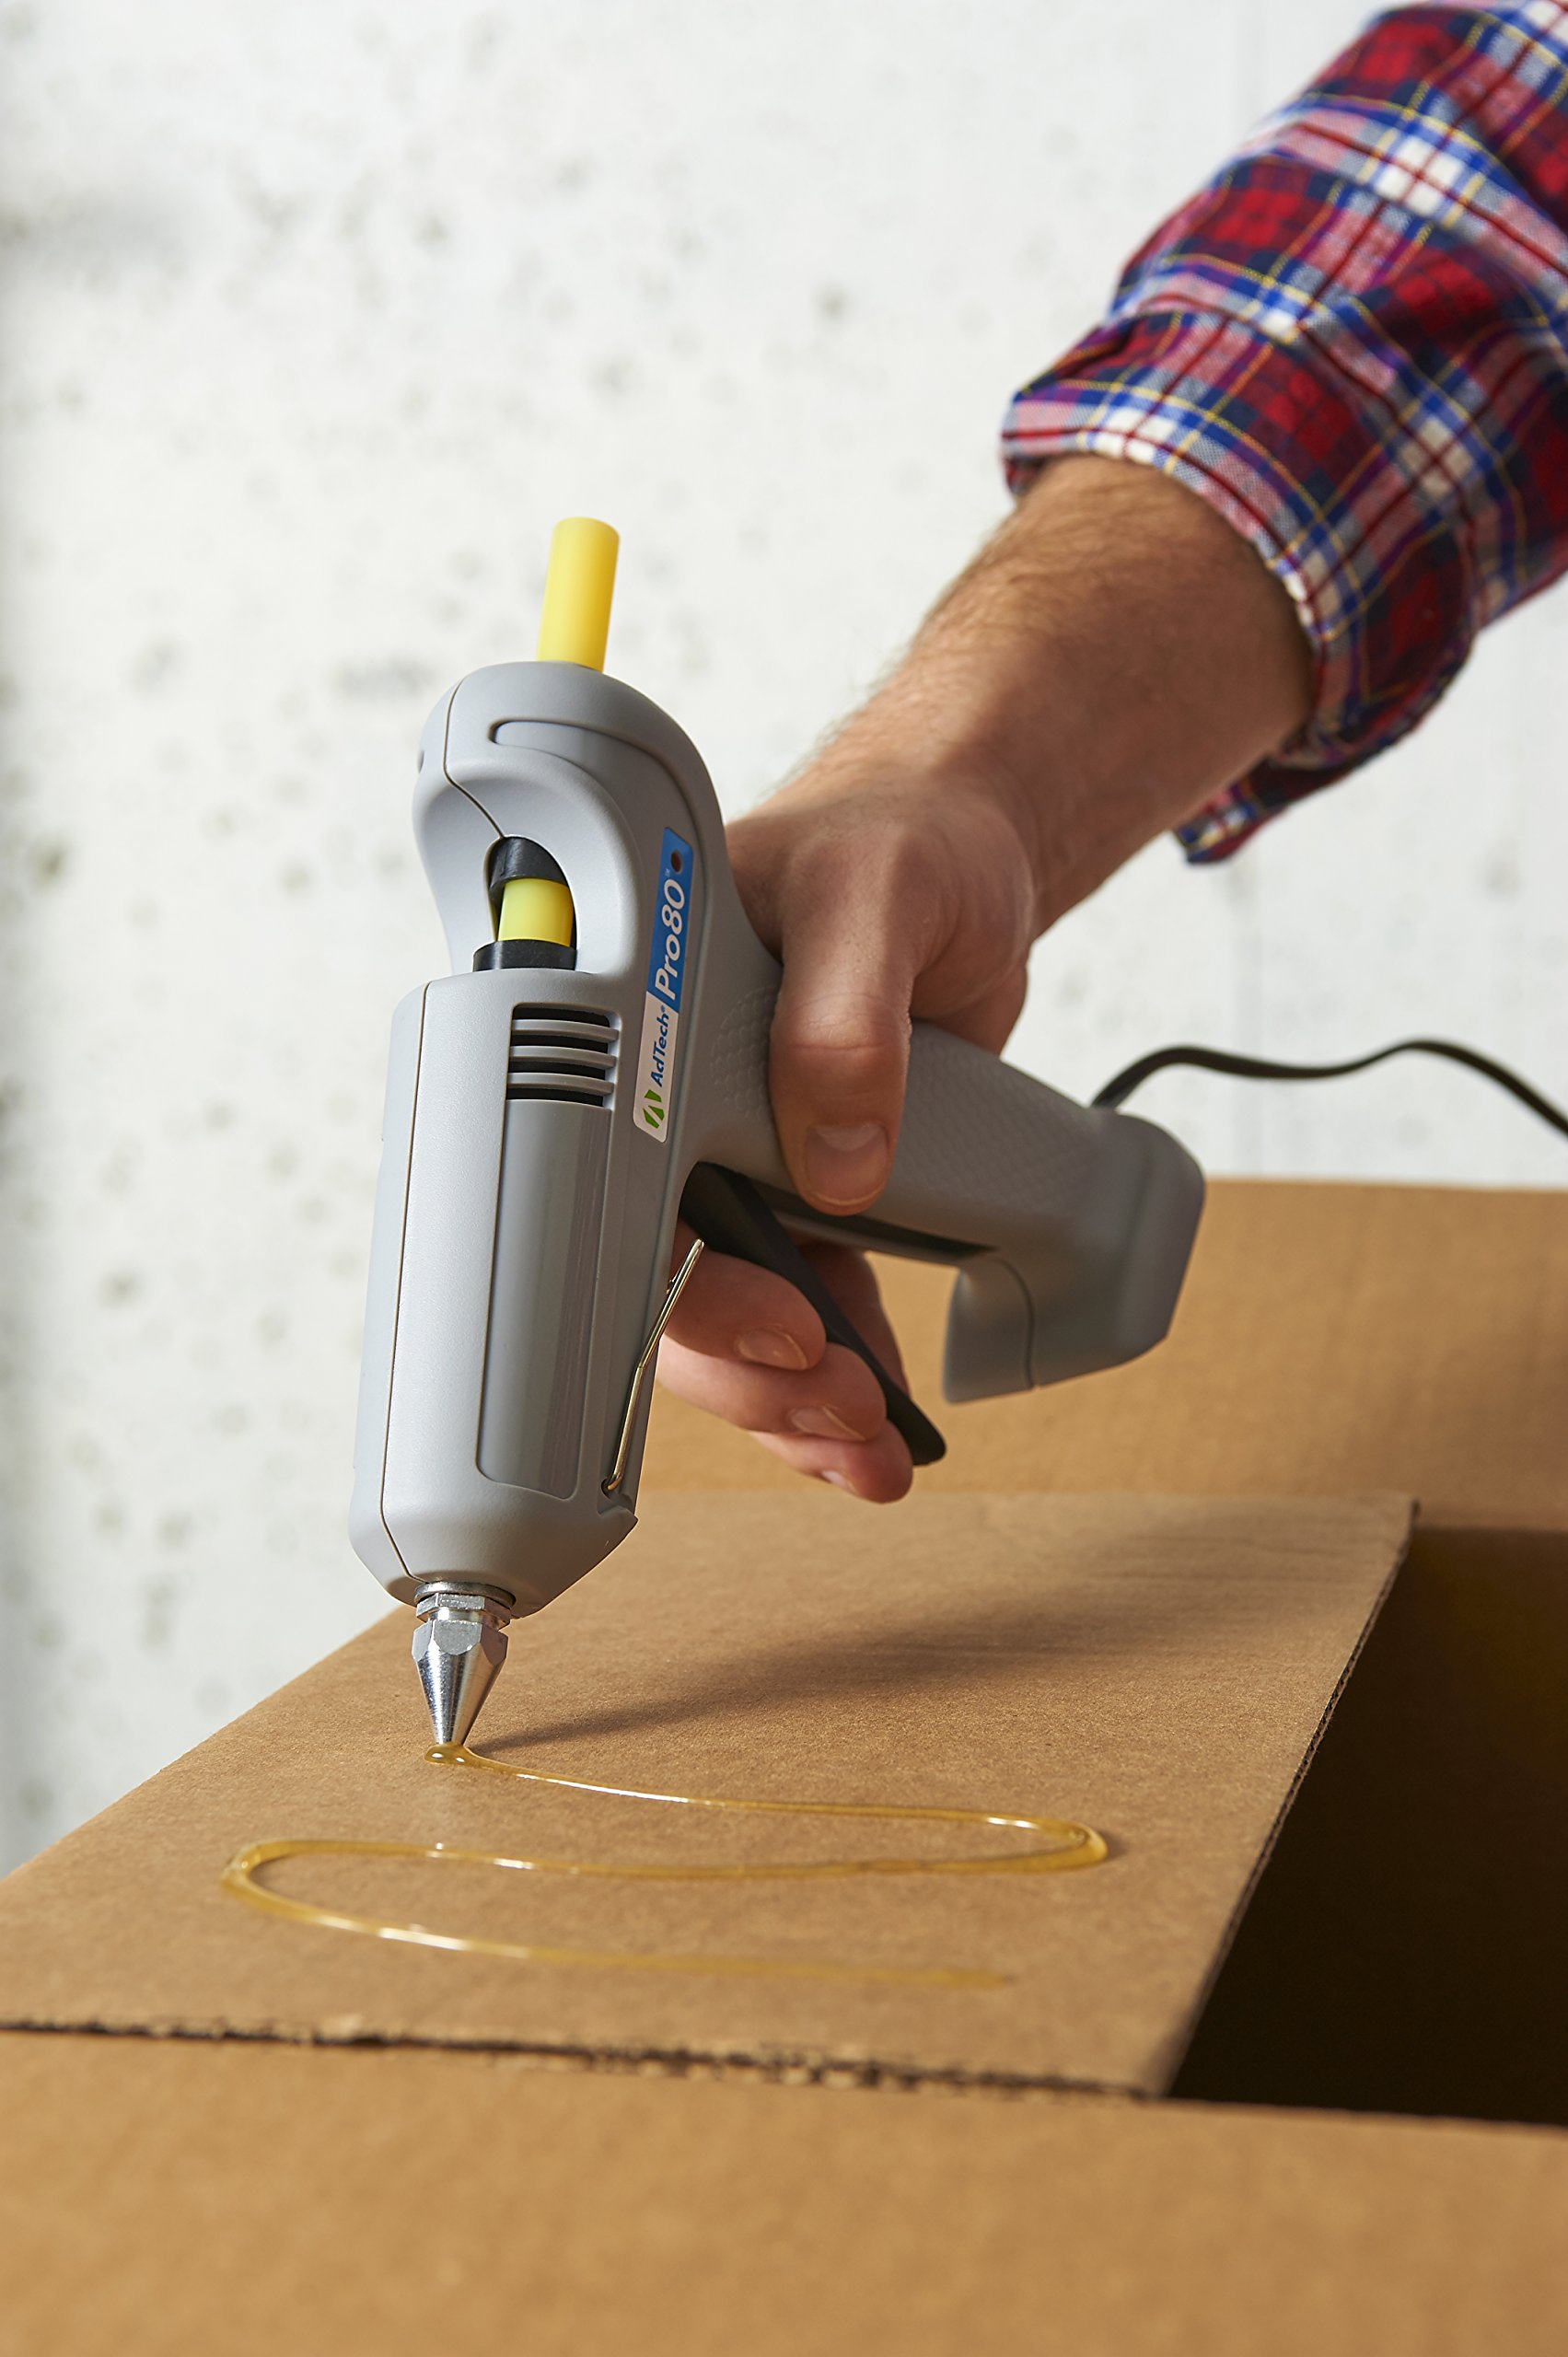 Adhesive Technologies 0114M AdTech Pro 80 Hot Glue Gun for Crafting and Home Improvement | 8X the Power | Bonus Nozzle Tips | Stands Up on Its Own | Item #0114 by Ad-Tech (Image #6)